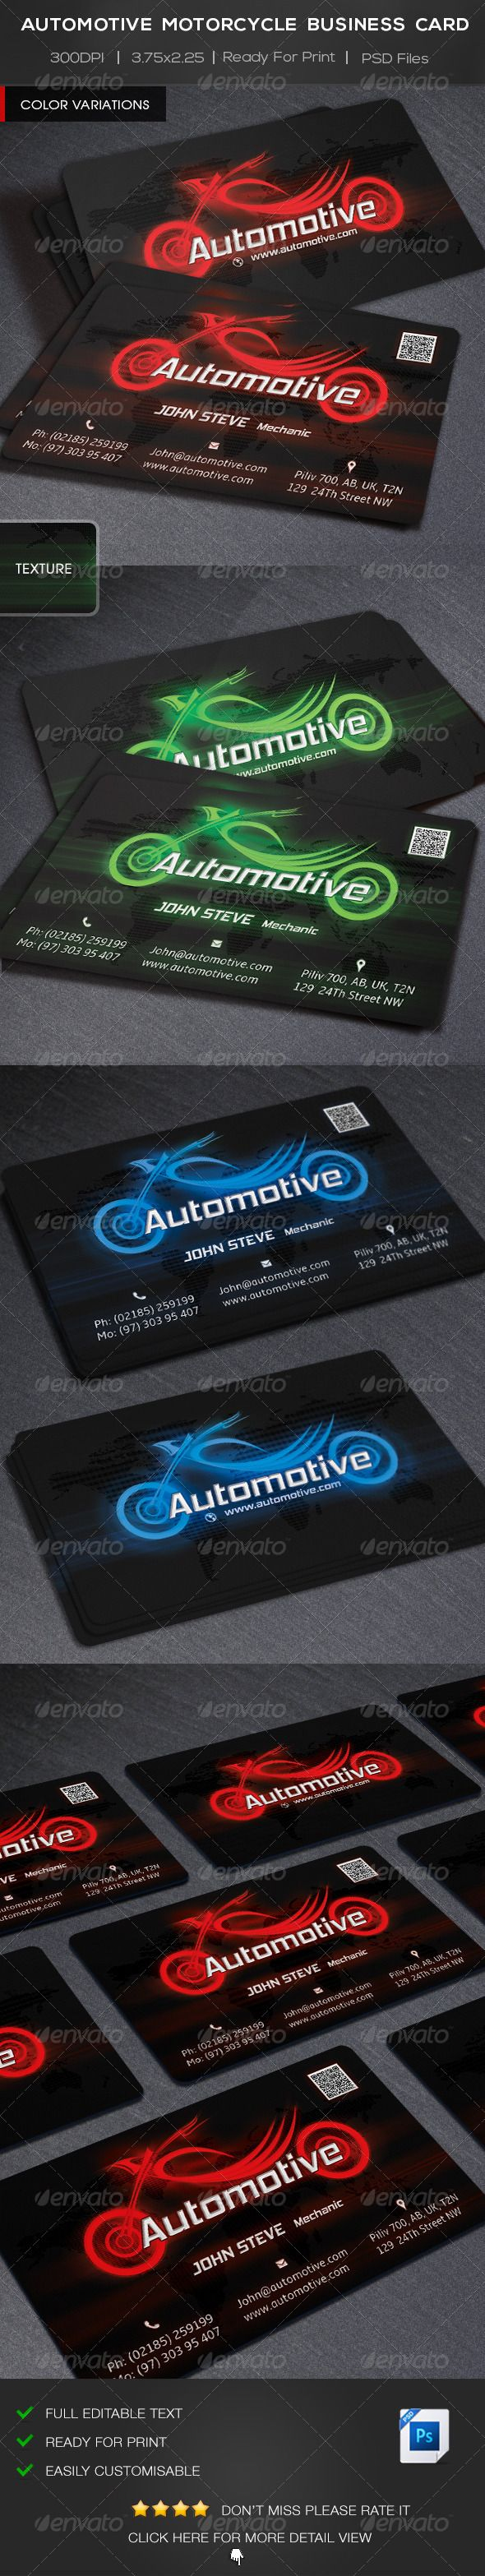 Automotive Motorcycle Business Card | Business cards, Business and ...